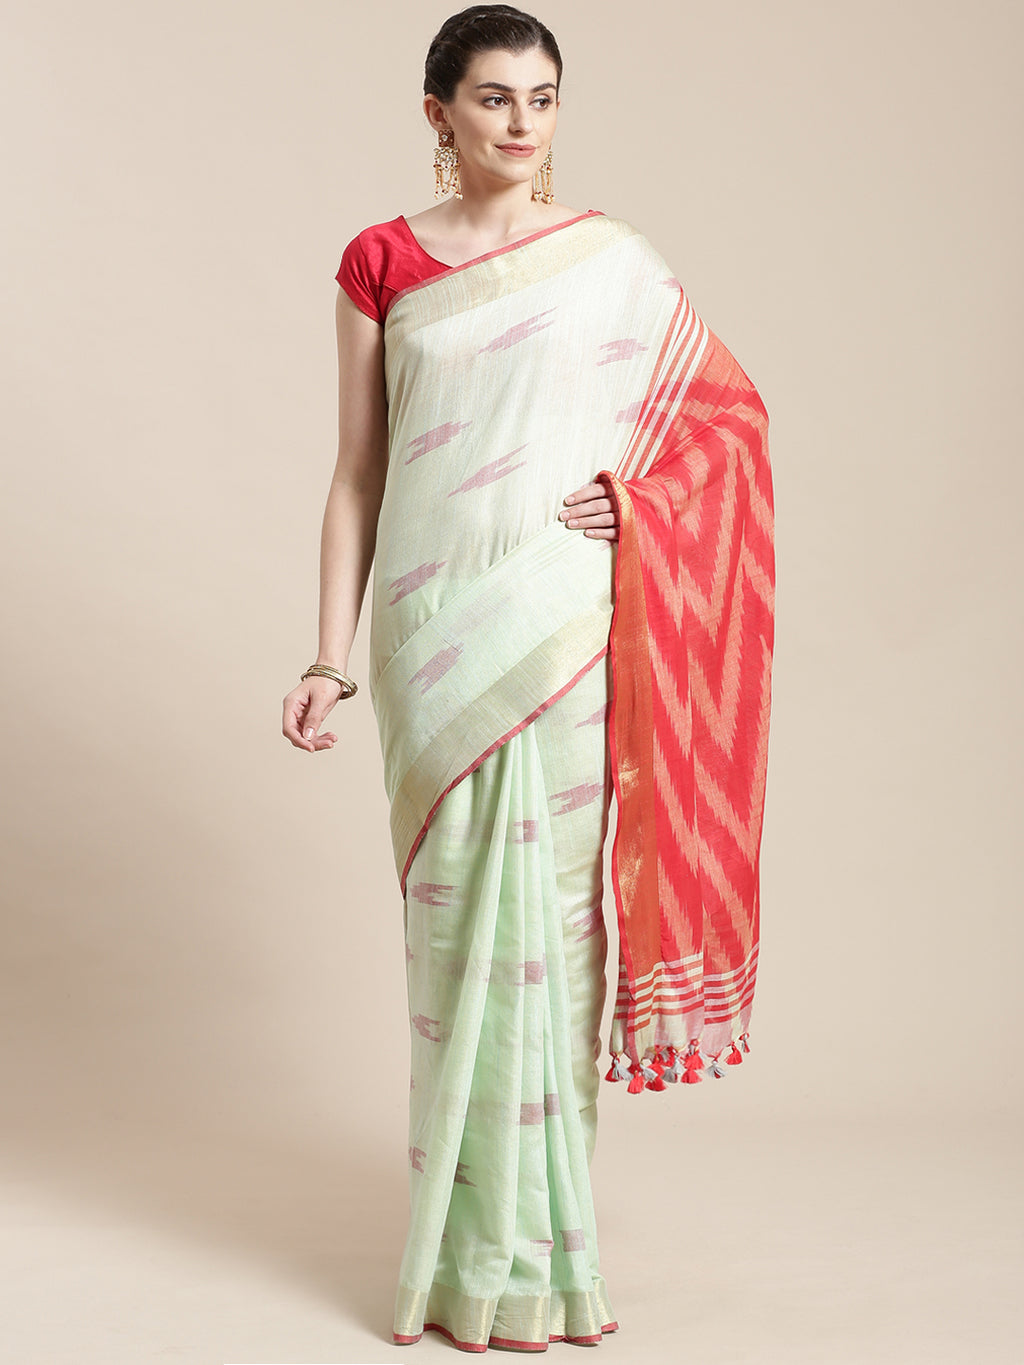 Linen Handwoven Saree and Blouse-Saree-Kalakari India-ALBGSA0048-Hand Woven, Linen, Sarees, Sustainable Fabrics, Traditional Weave-[Linen,Ethnic,wear,Fashionista,Handloom,Handicraft,Indigo,blockprint,block,print,Cotton,Chanderi,Blue, latest,classy,party,bollywood,trendy,summer,style,traditional,formal,elegant,unique,style,hand,block,print, dabu,booti,gift,present,glamorous,affordable,collectible,Sari,Saree,printed, holi, Diwali, birthday, anniversary, sustainable, organic, scarf, online, low pri